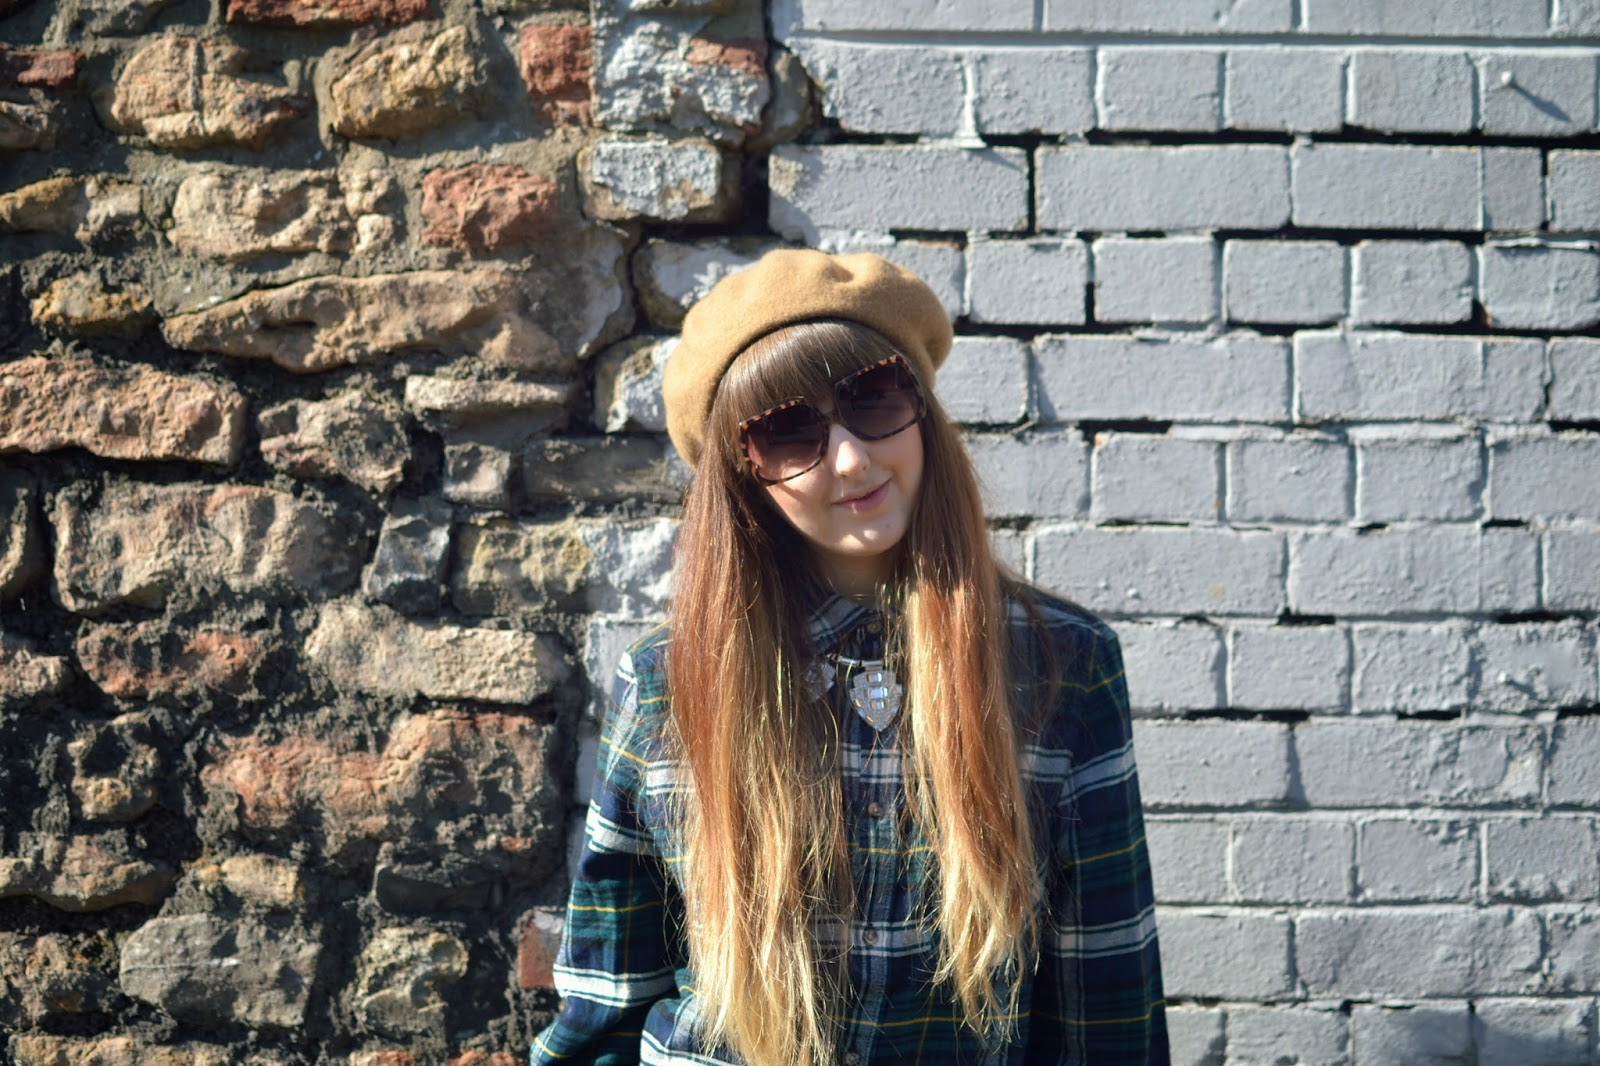 H&M plaid shirt asos sunglasses